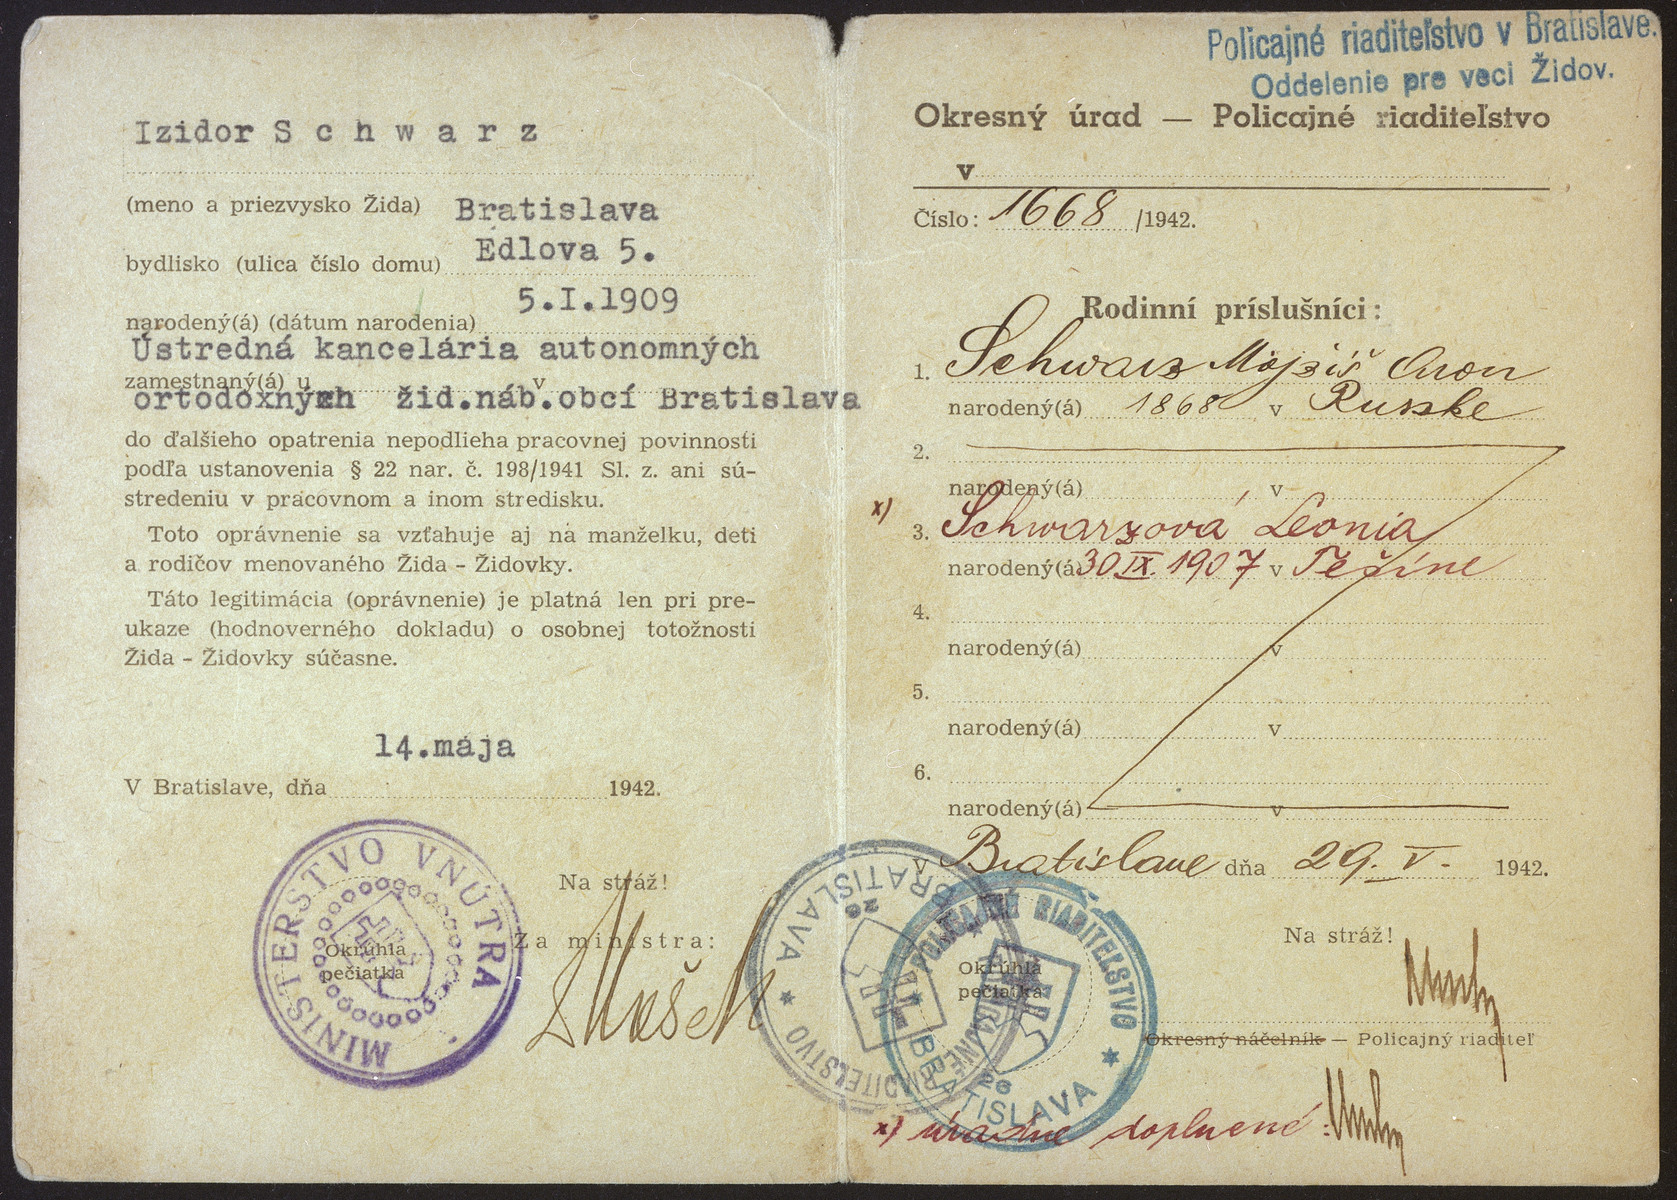 Card issued by the Slovak Ministry of Interior testifying that Izidor Schwarz is excluded from labor duty and from concentration in a labor camp, as  stipulated by the decree 198/1941.n.